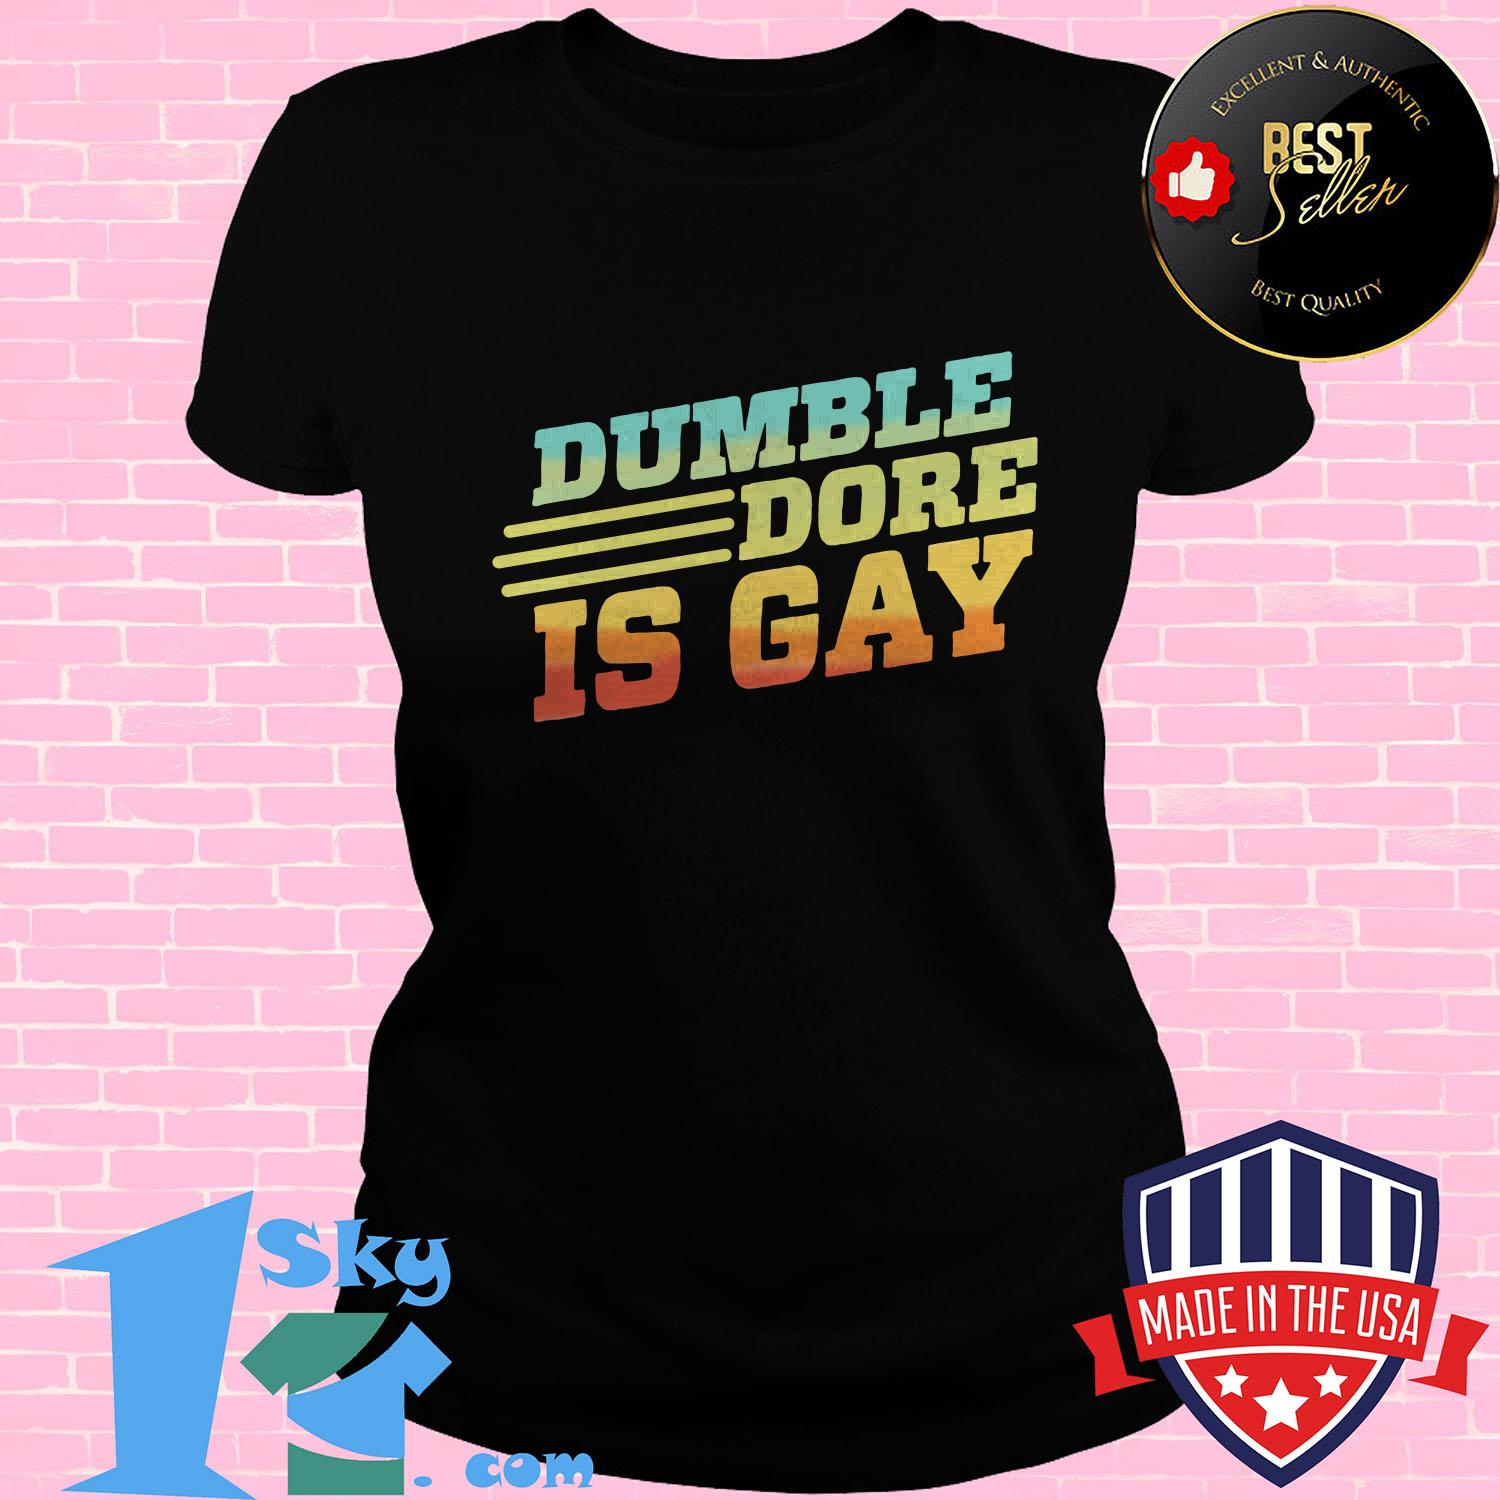 dumbledore is gay expecto equality ladies tee - Dumbledore Is Gay Expecto Equality shirt